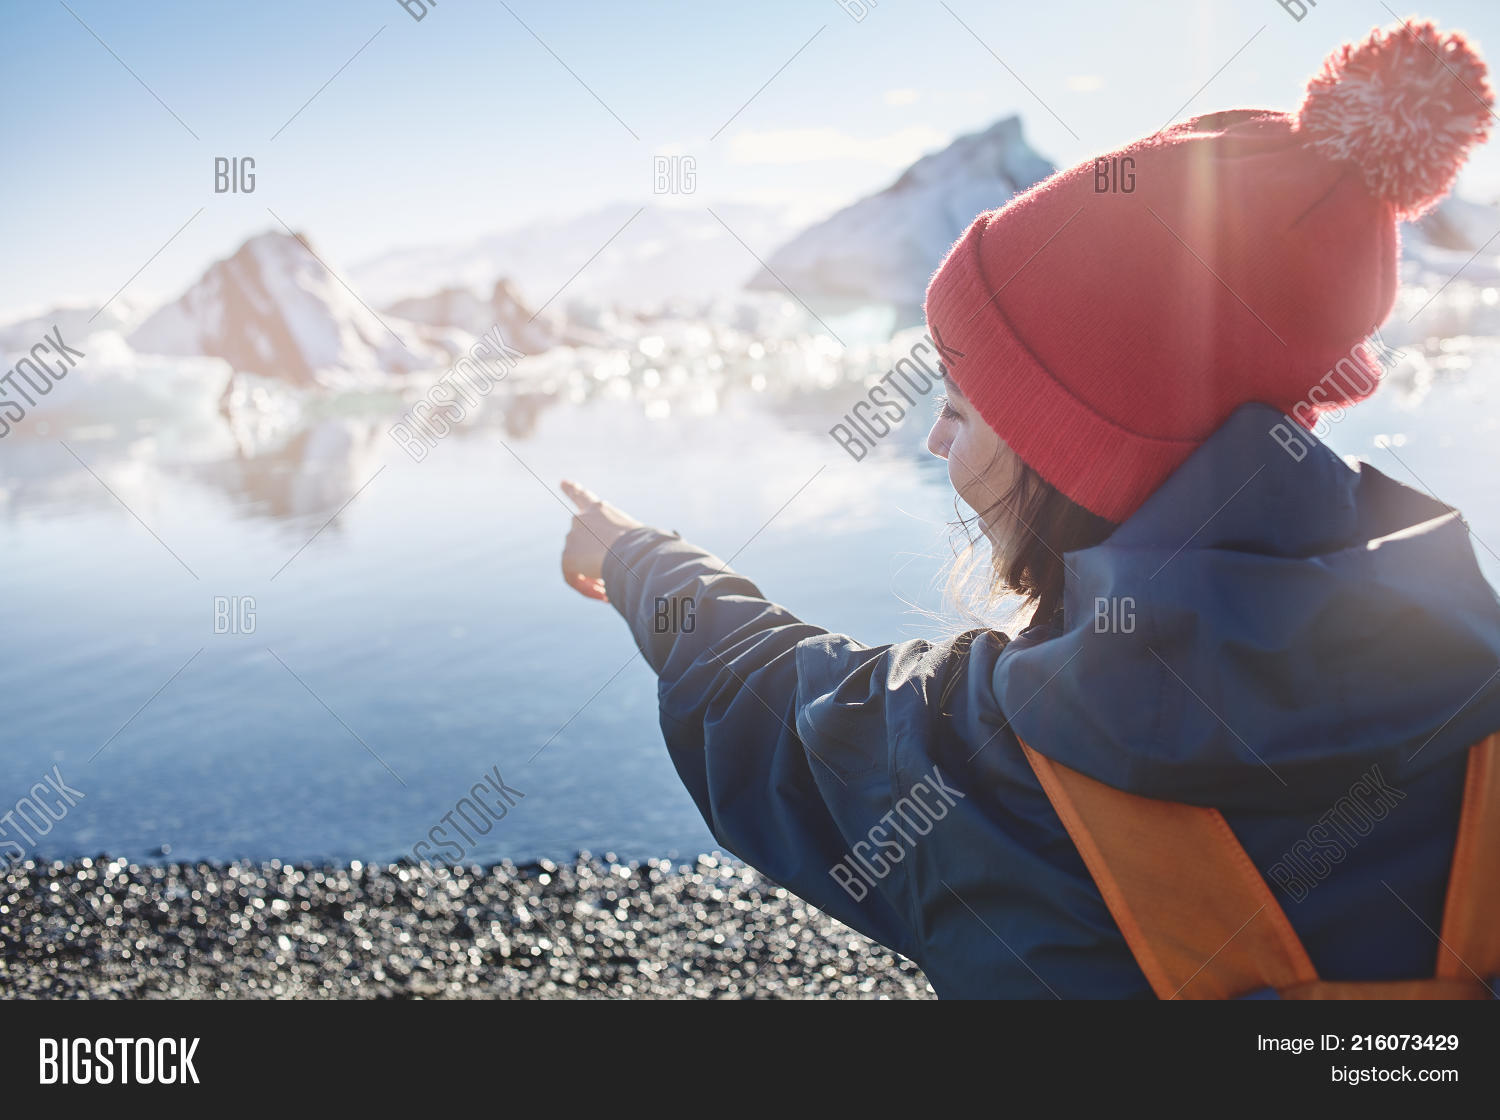 8e4d48ab2a1 back view of woman in warm clothing and knitted red hat with orange  backpack in Ice